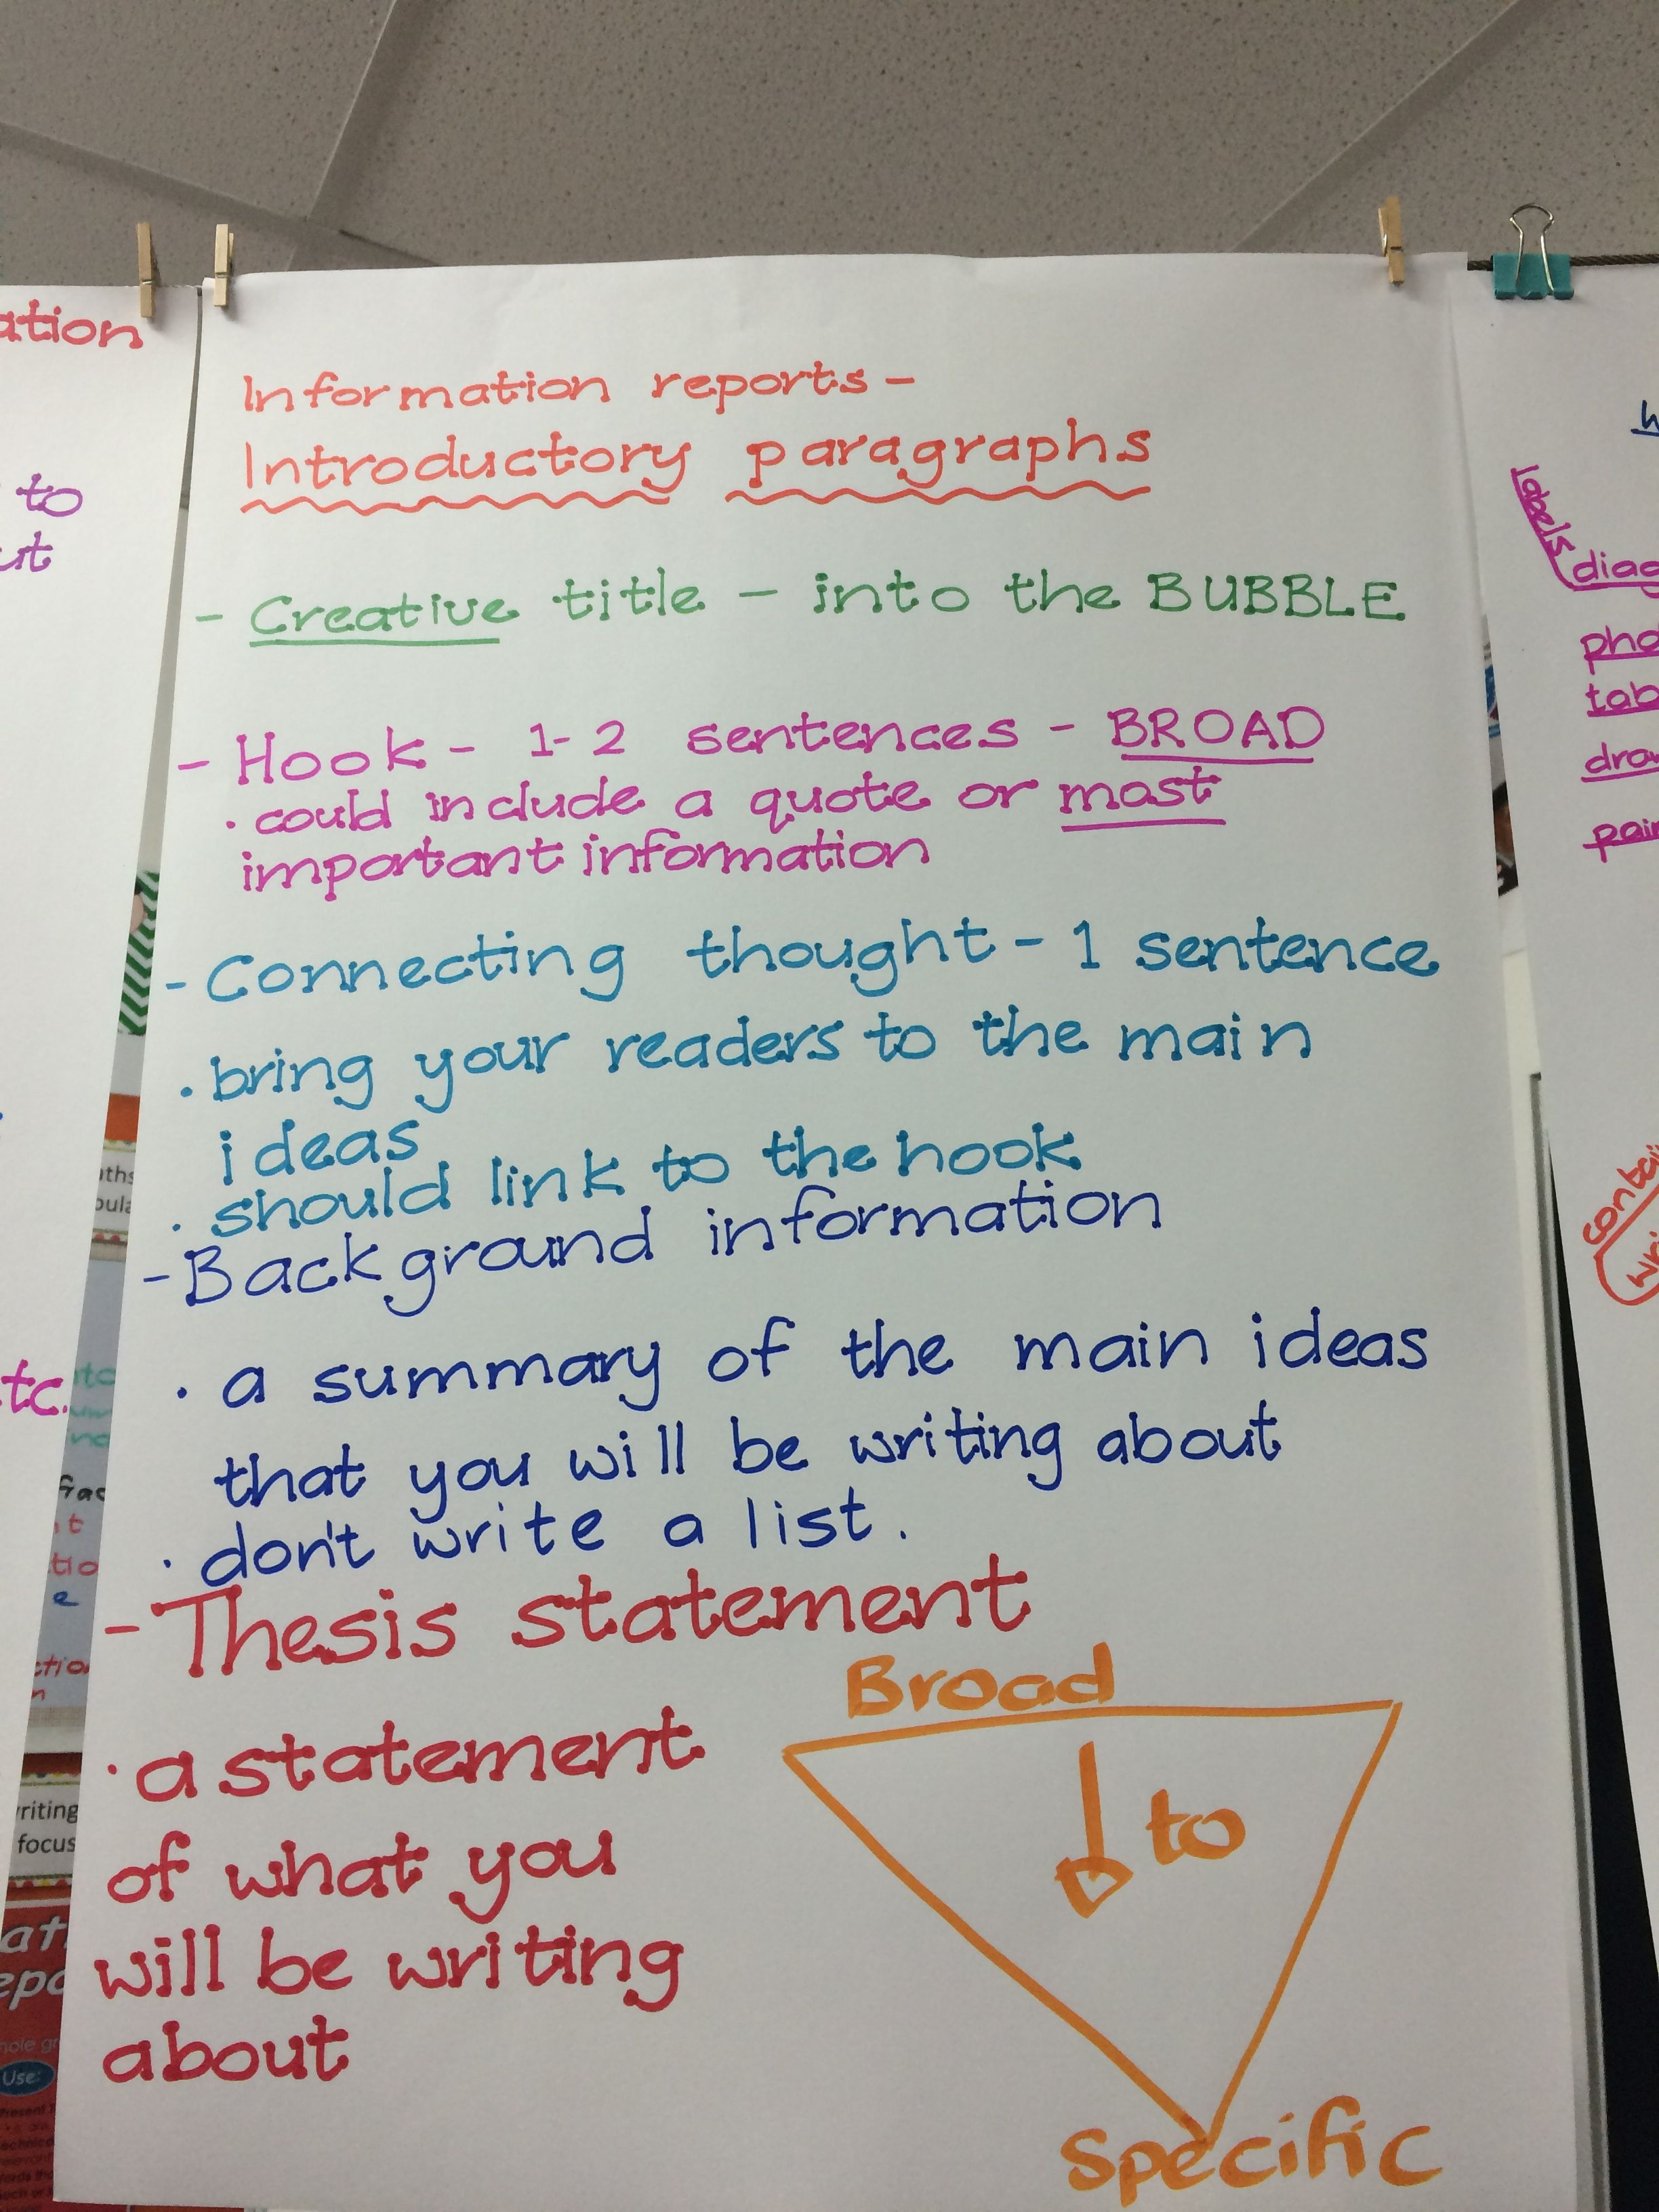 How To Structure An Introductory Paragraph Information